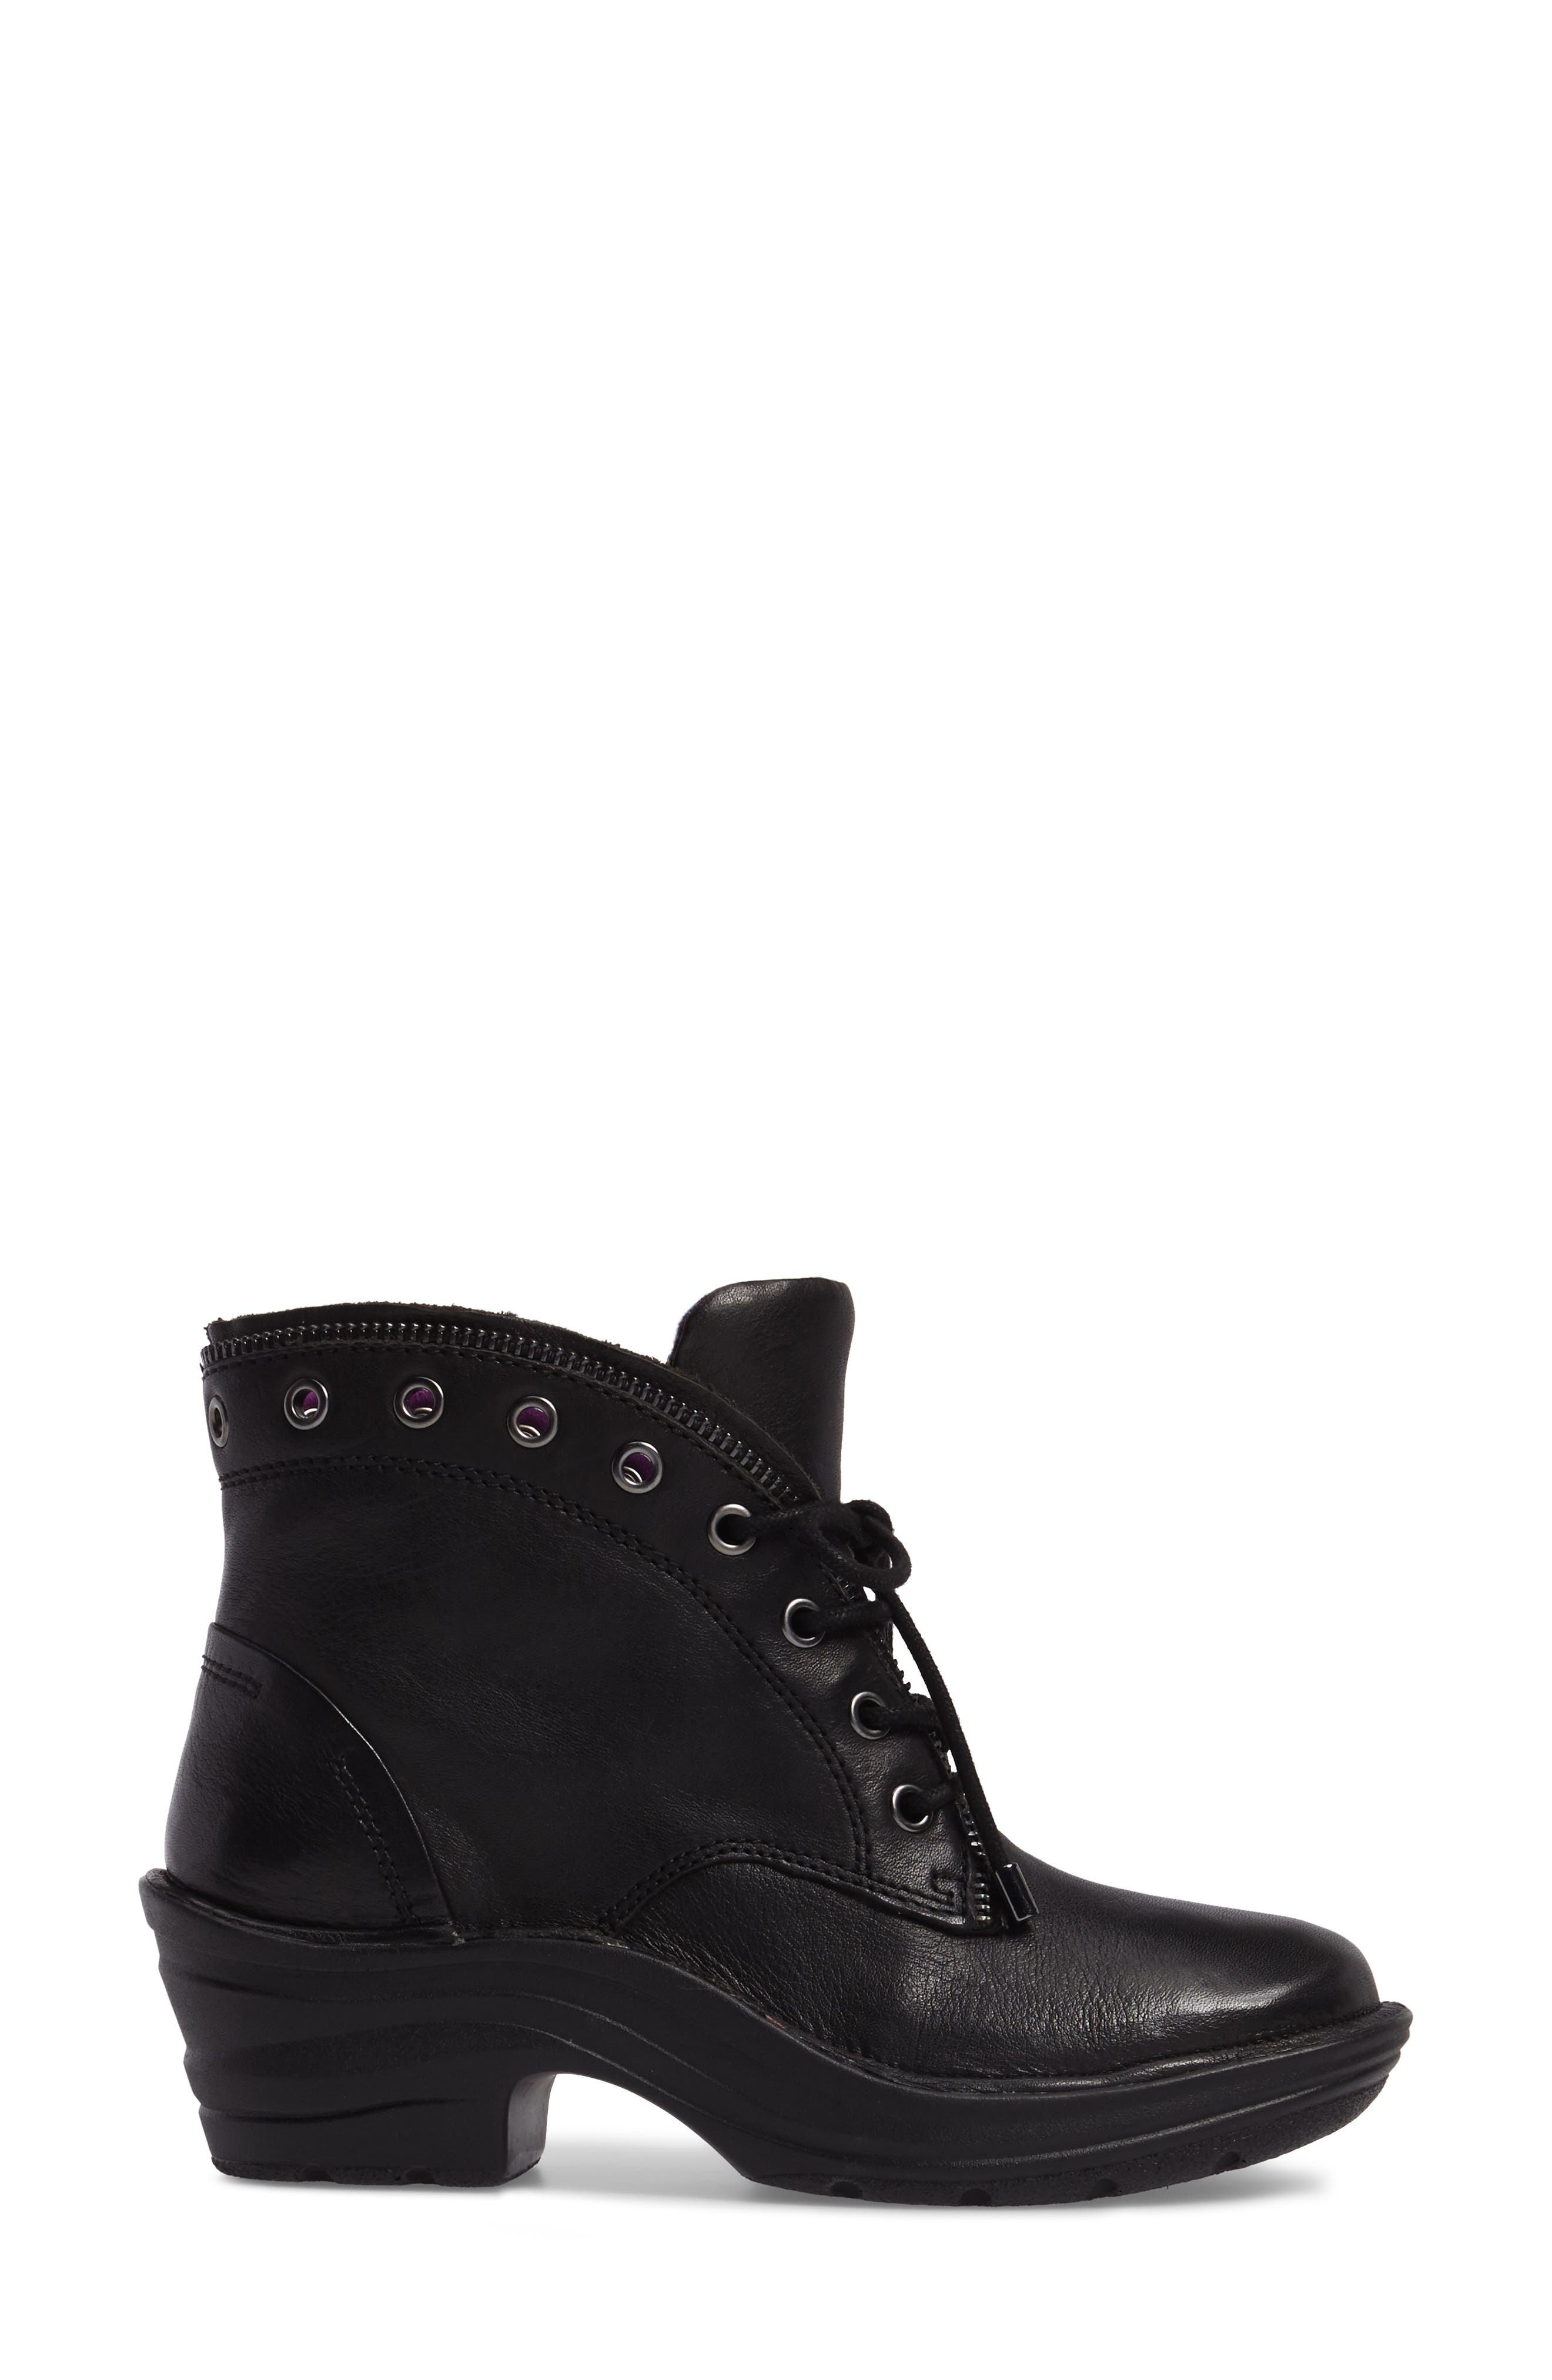 Rangely Boot,                             Alternate thumbnail 3, color,                             001